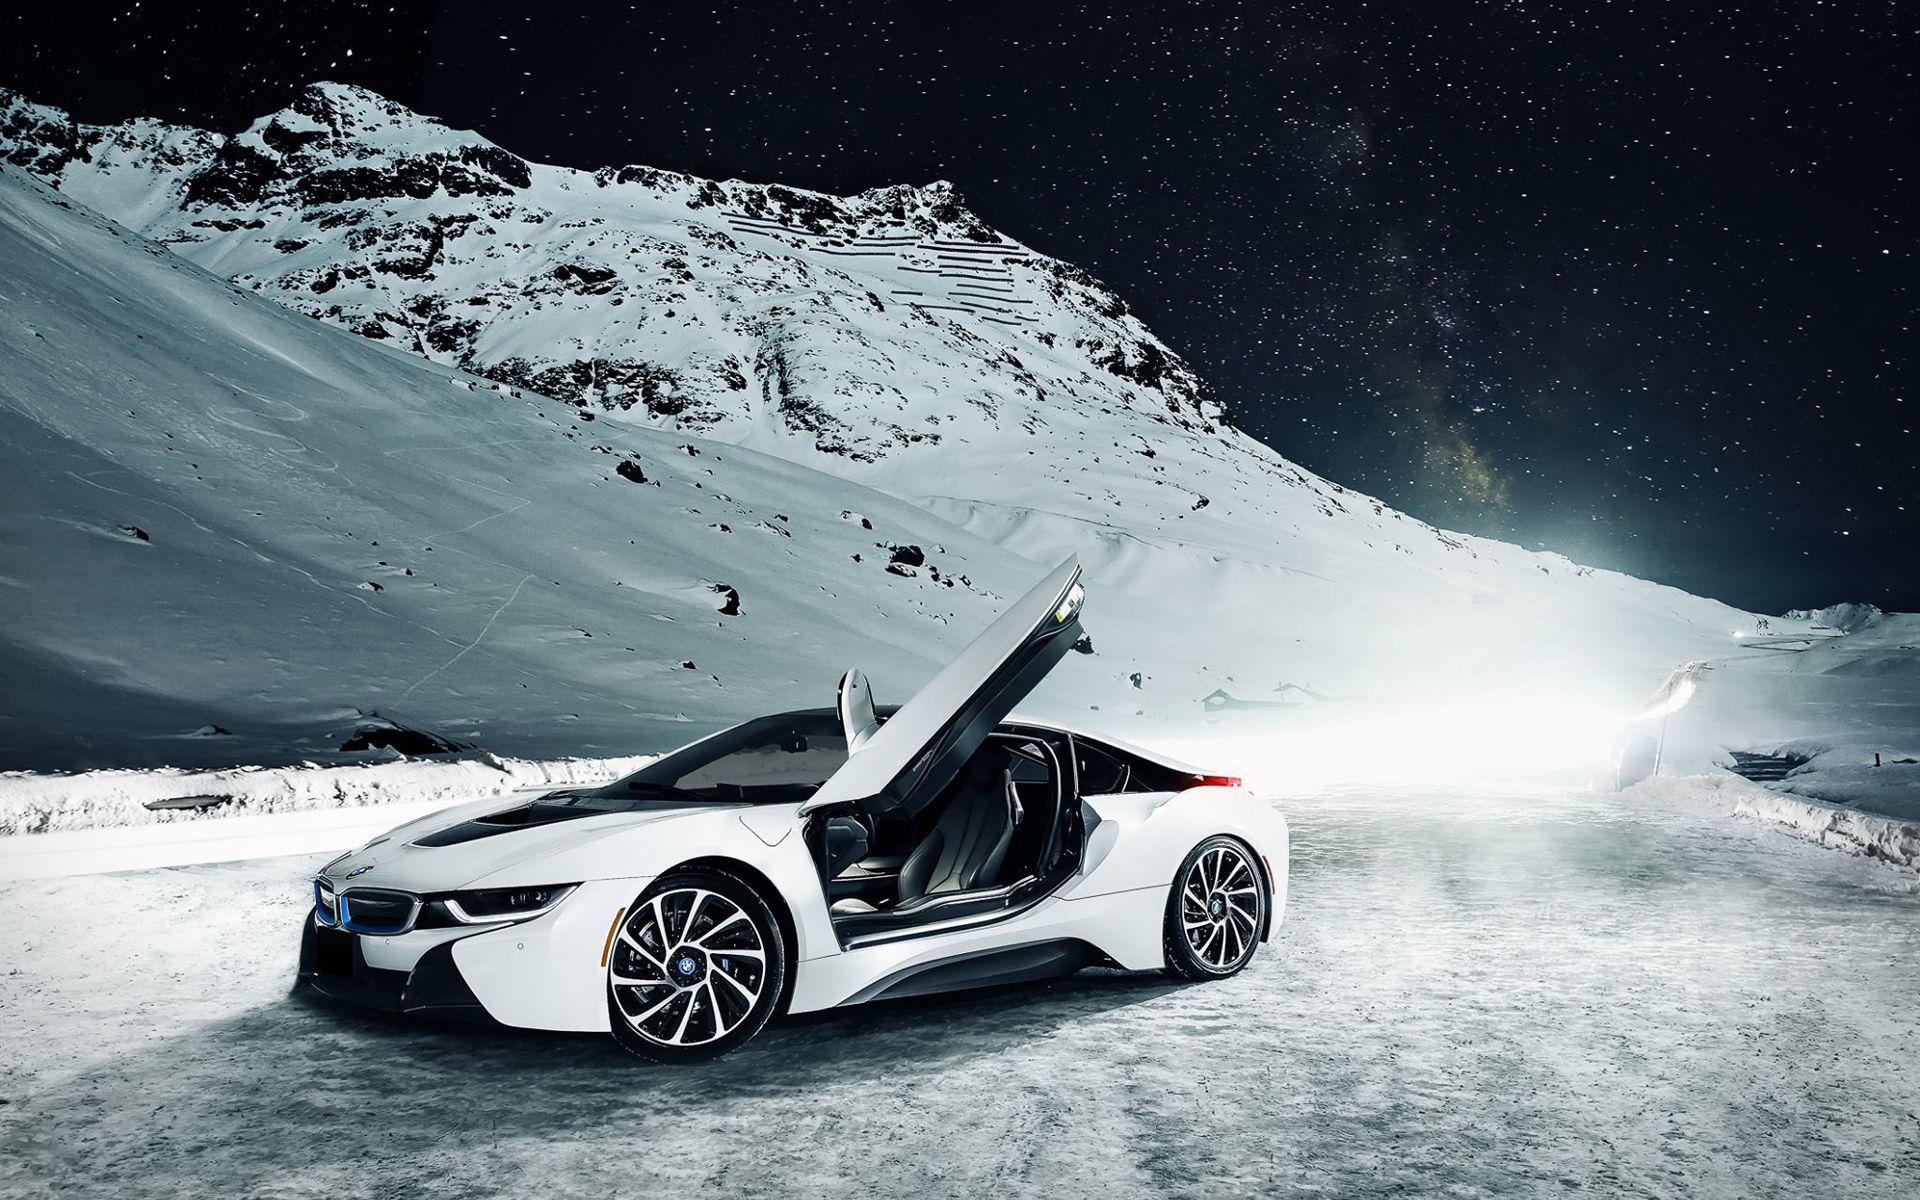 White BMW I8 In The Snow-Capped Mountains Under The Stars